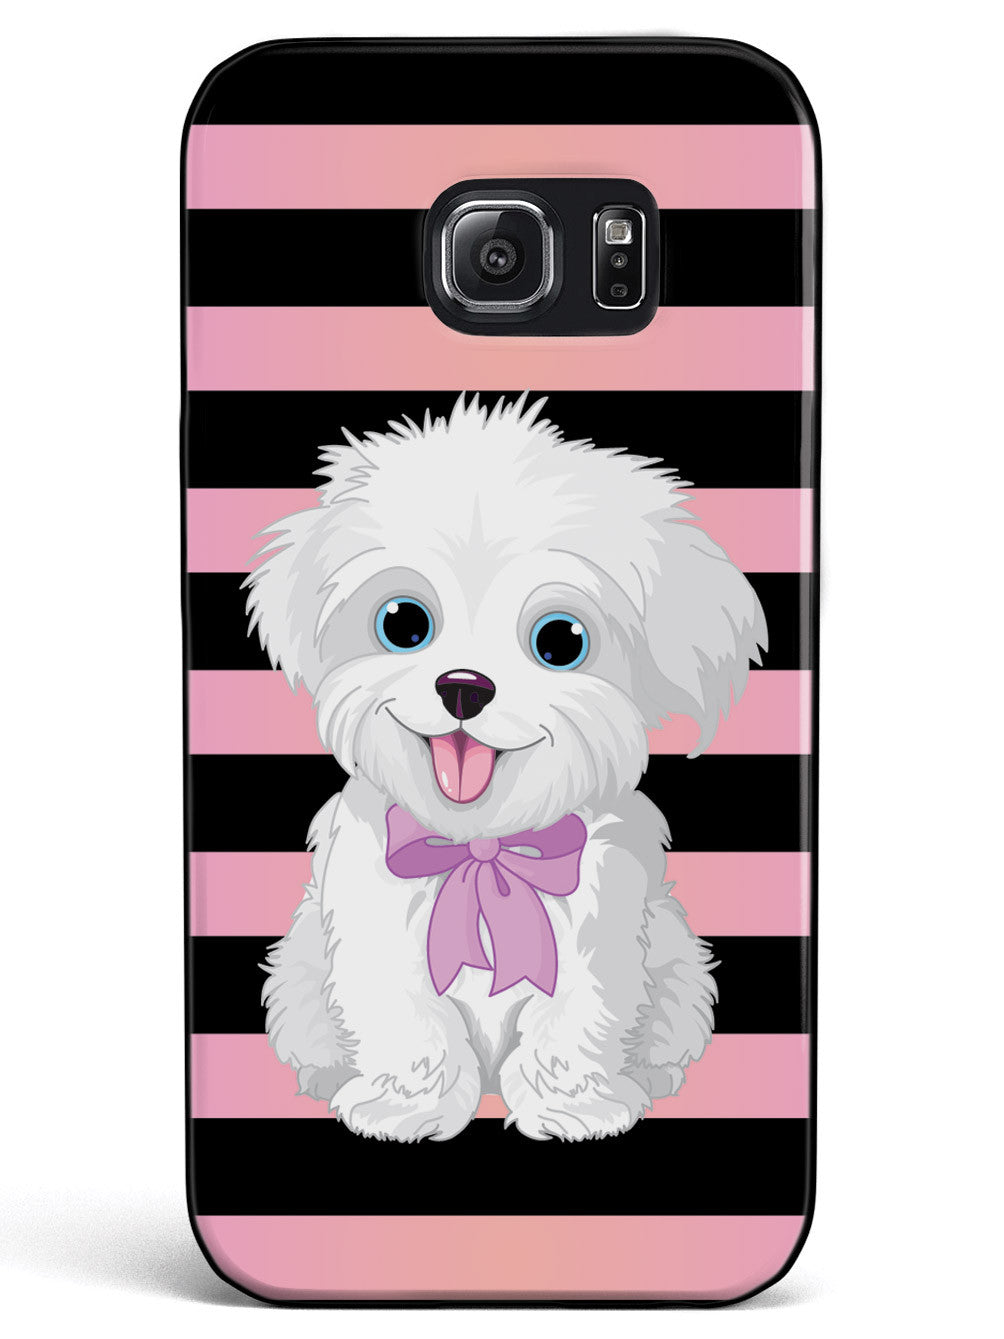 Cute Maltese Puppy Cartoon - Black Case